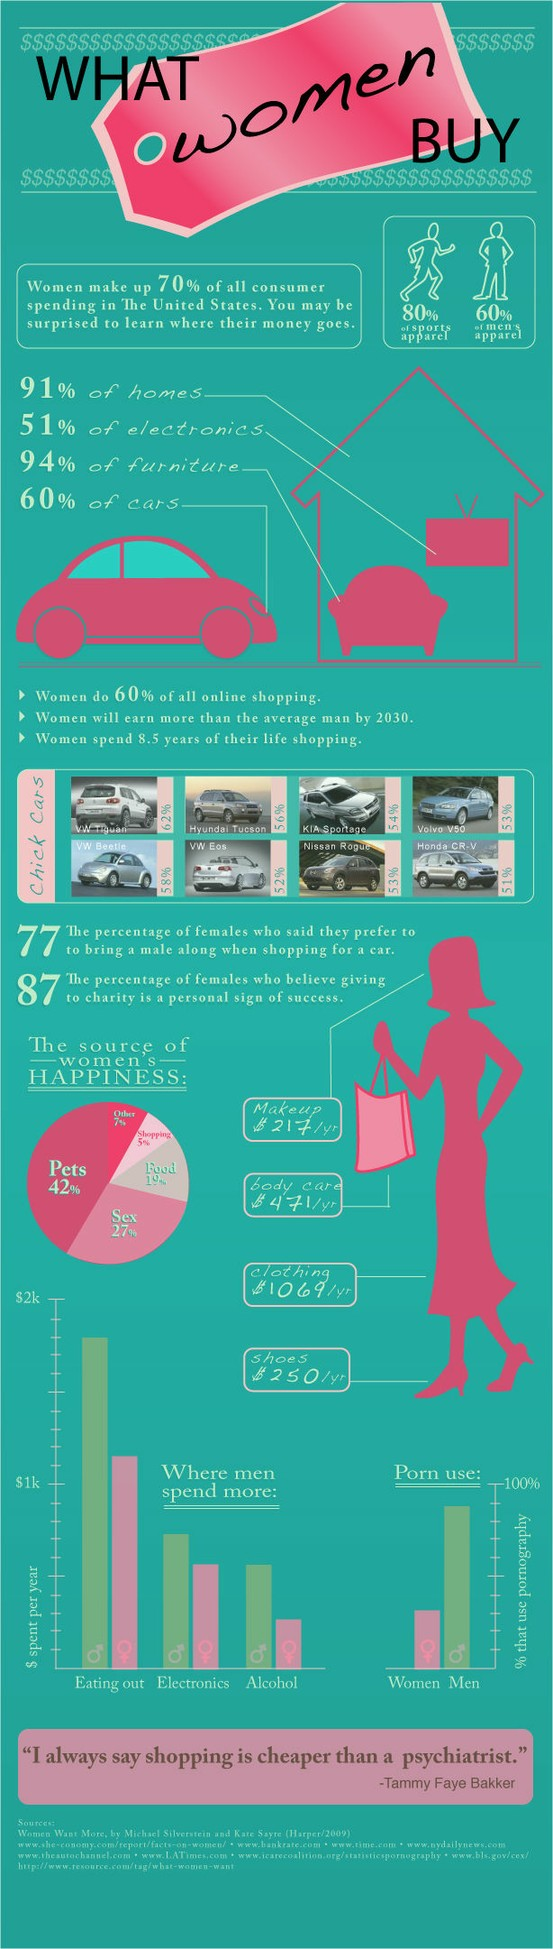 Shopping Habits of Women